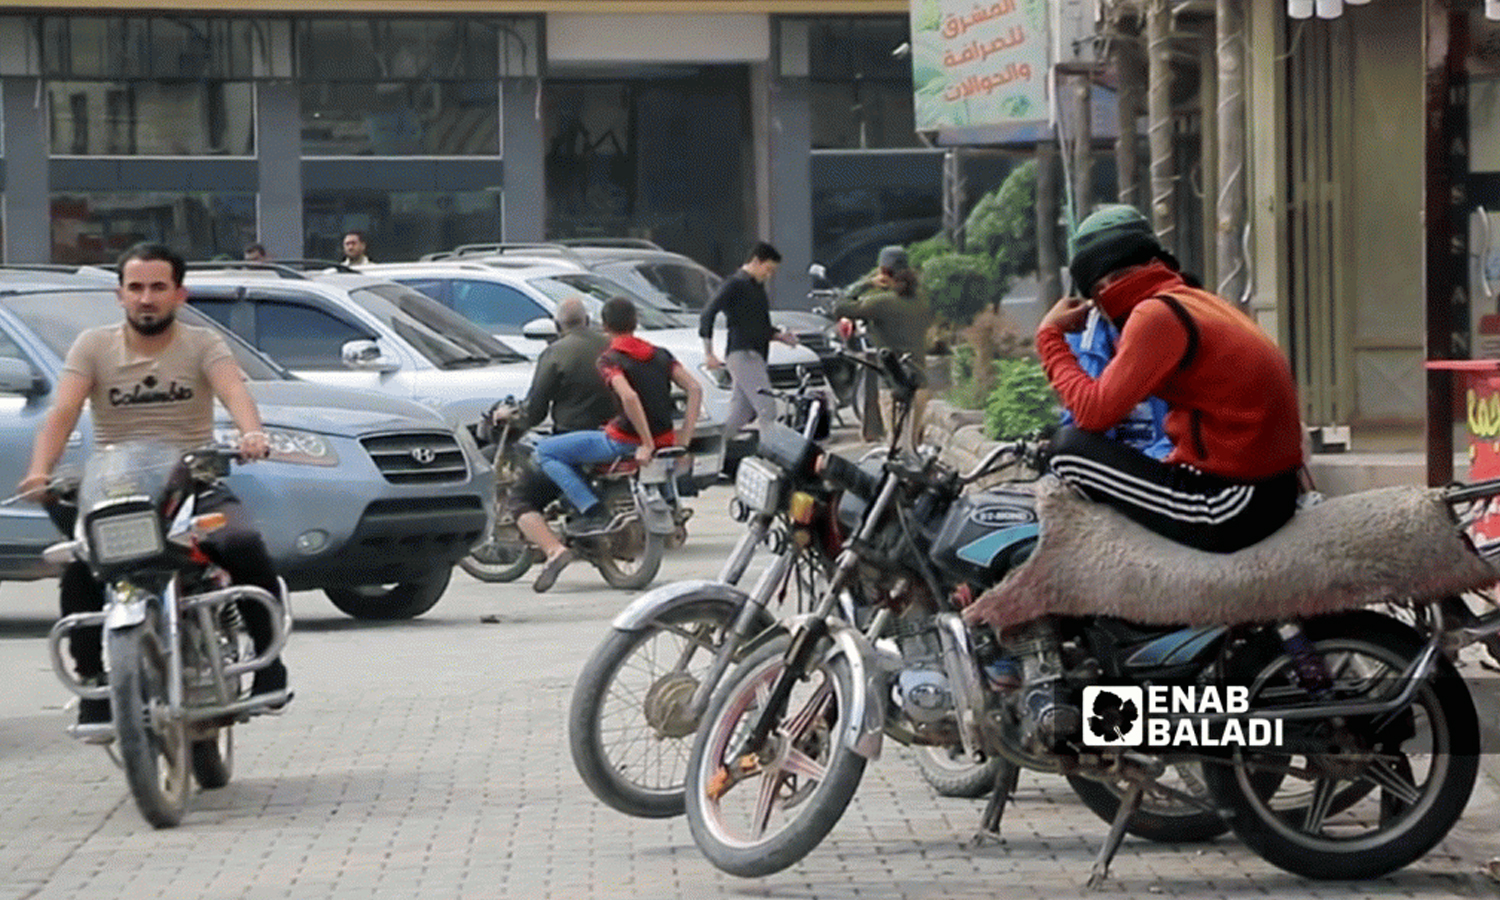 Amid High Fuel Prices and Low Income, Motorbike Taxi Service in Azaz